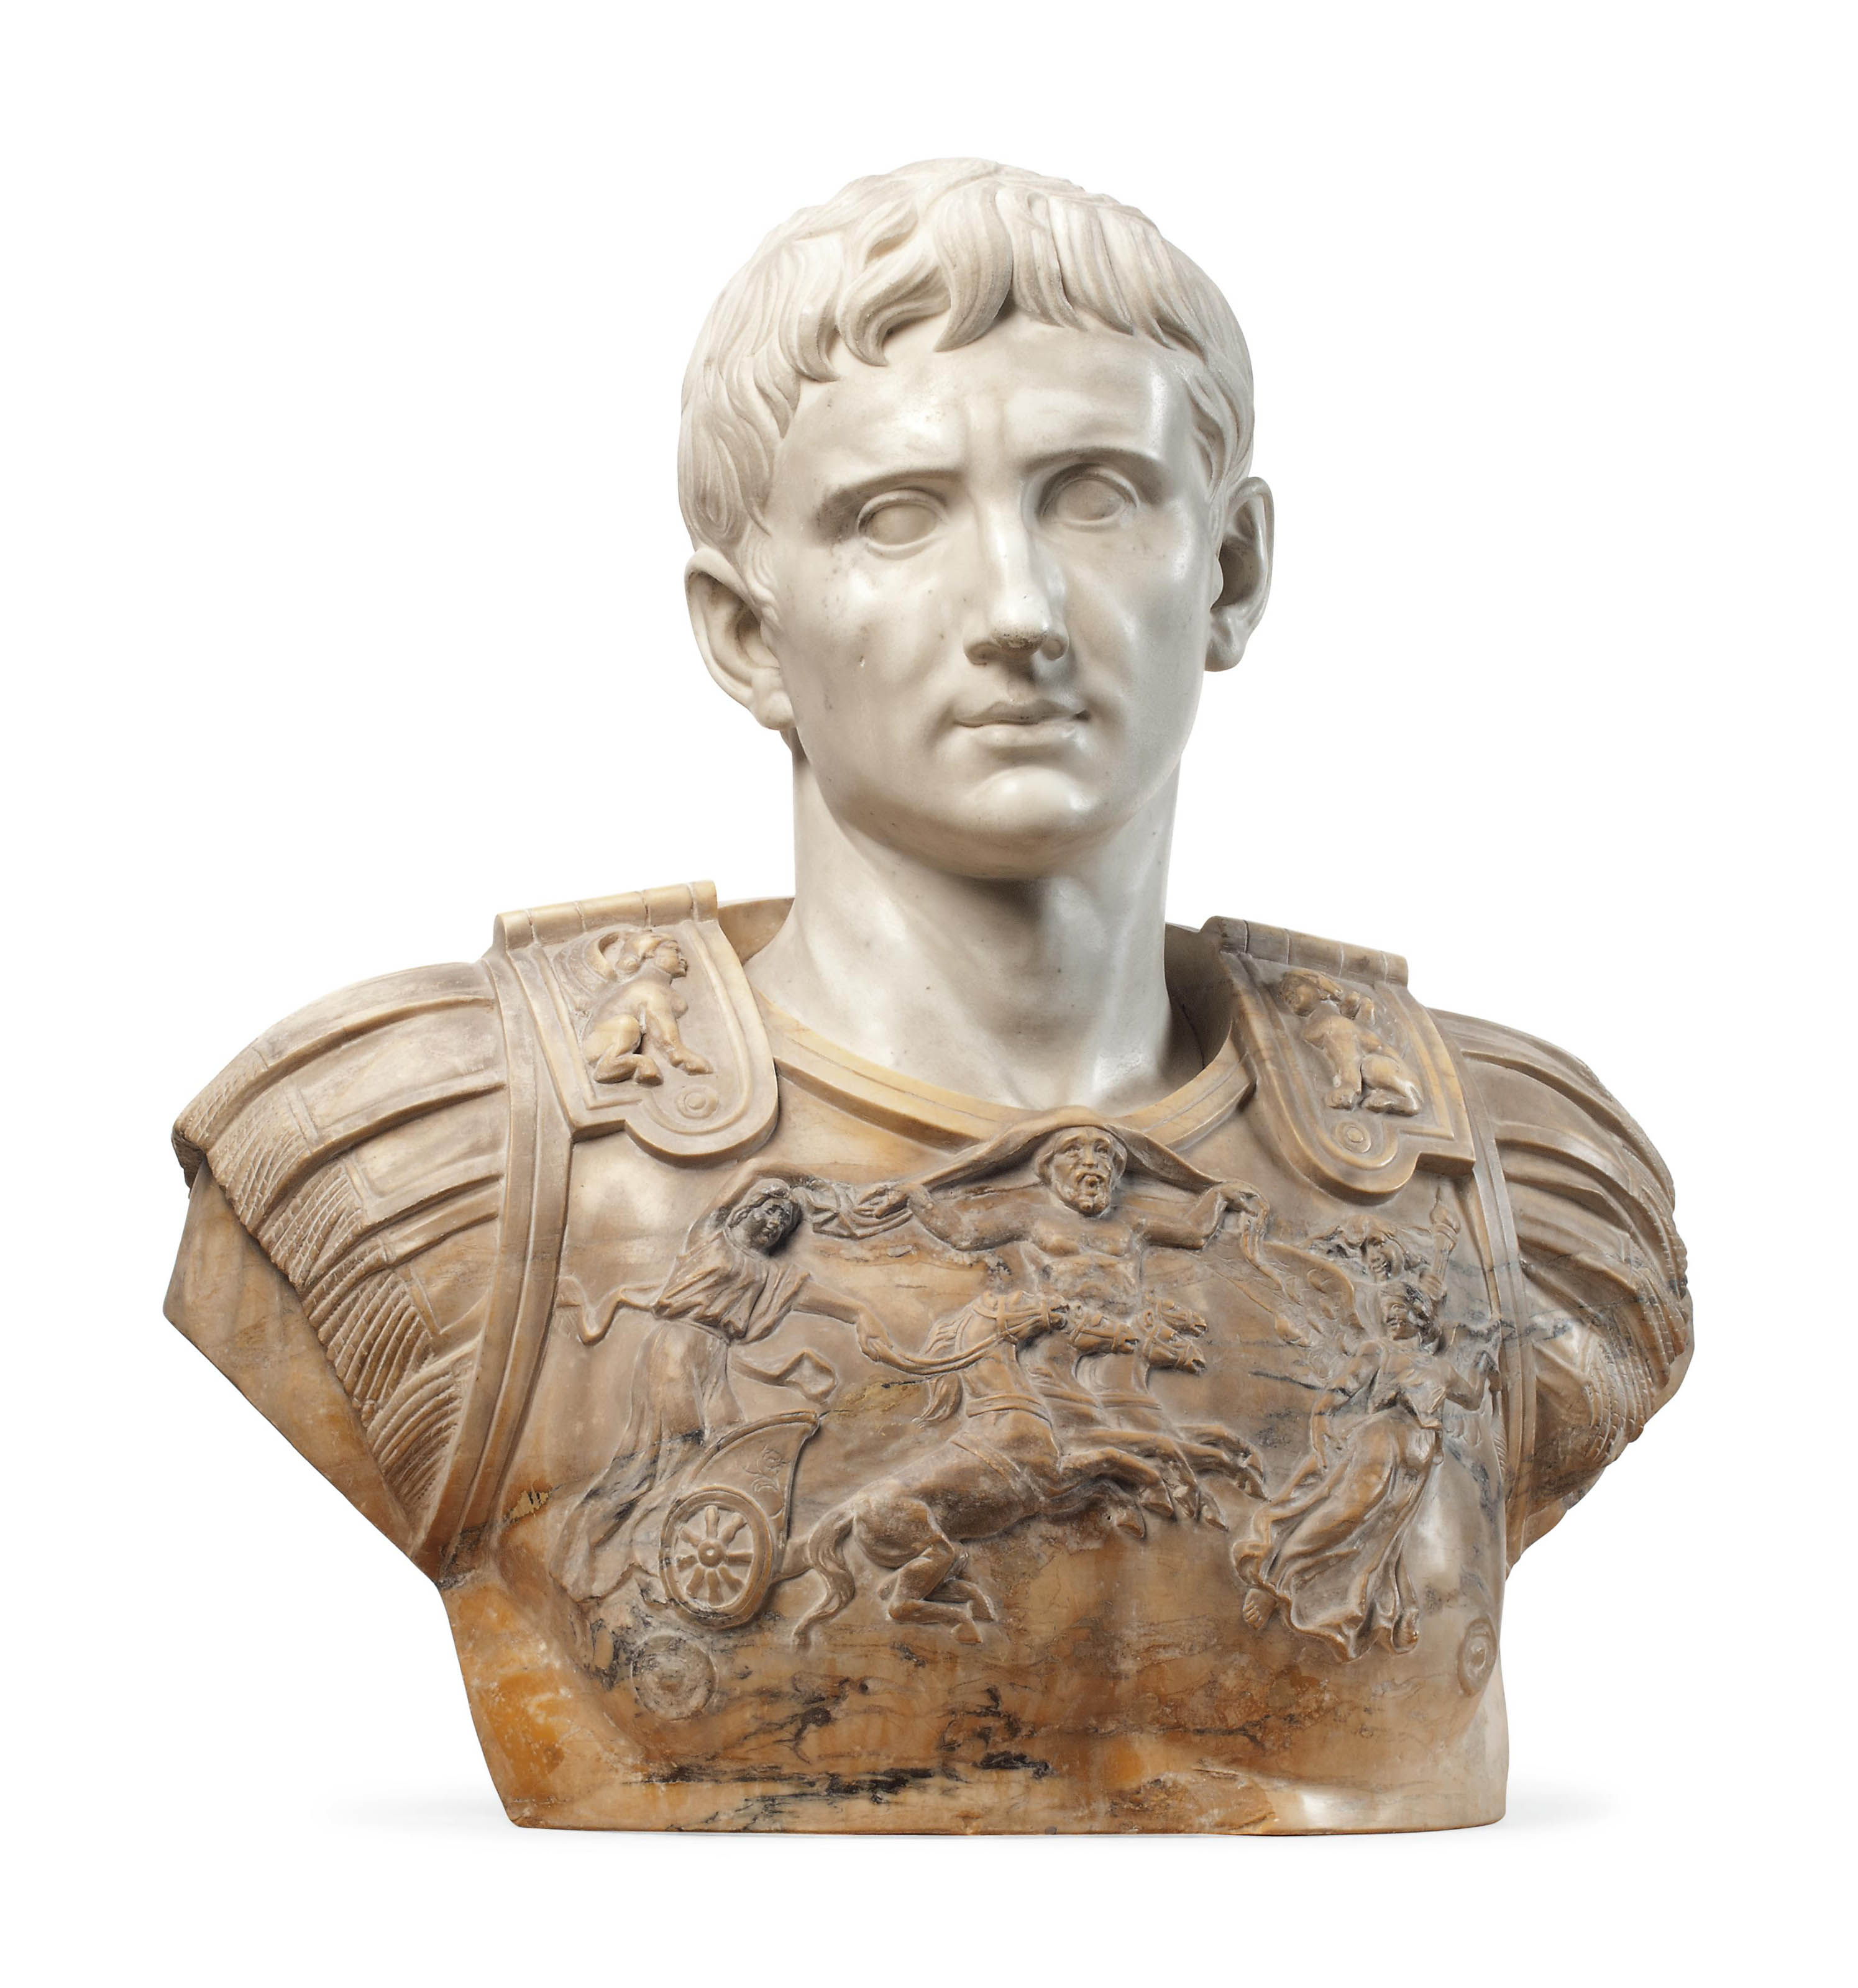 AN ITALIAN CARVED WHITE AND SIENA MARBLE BUST OF CAESAR AUGUSTUS